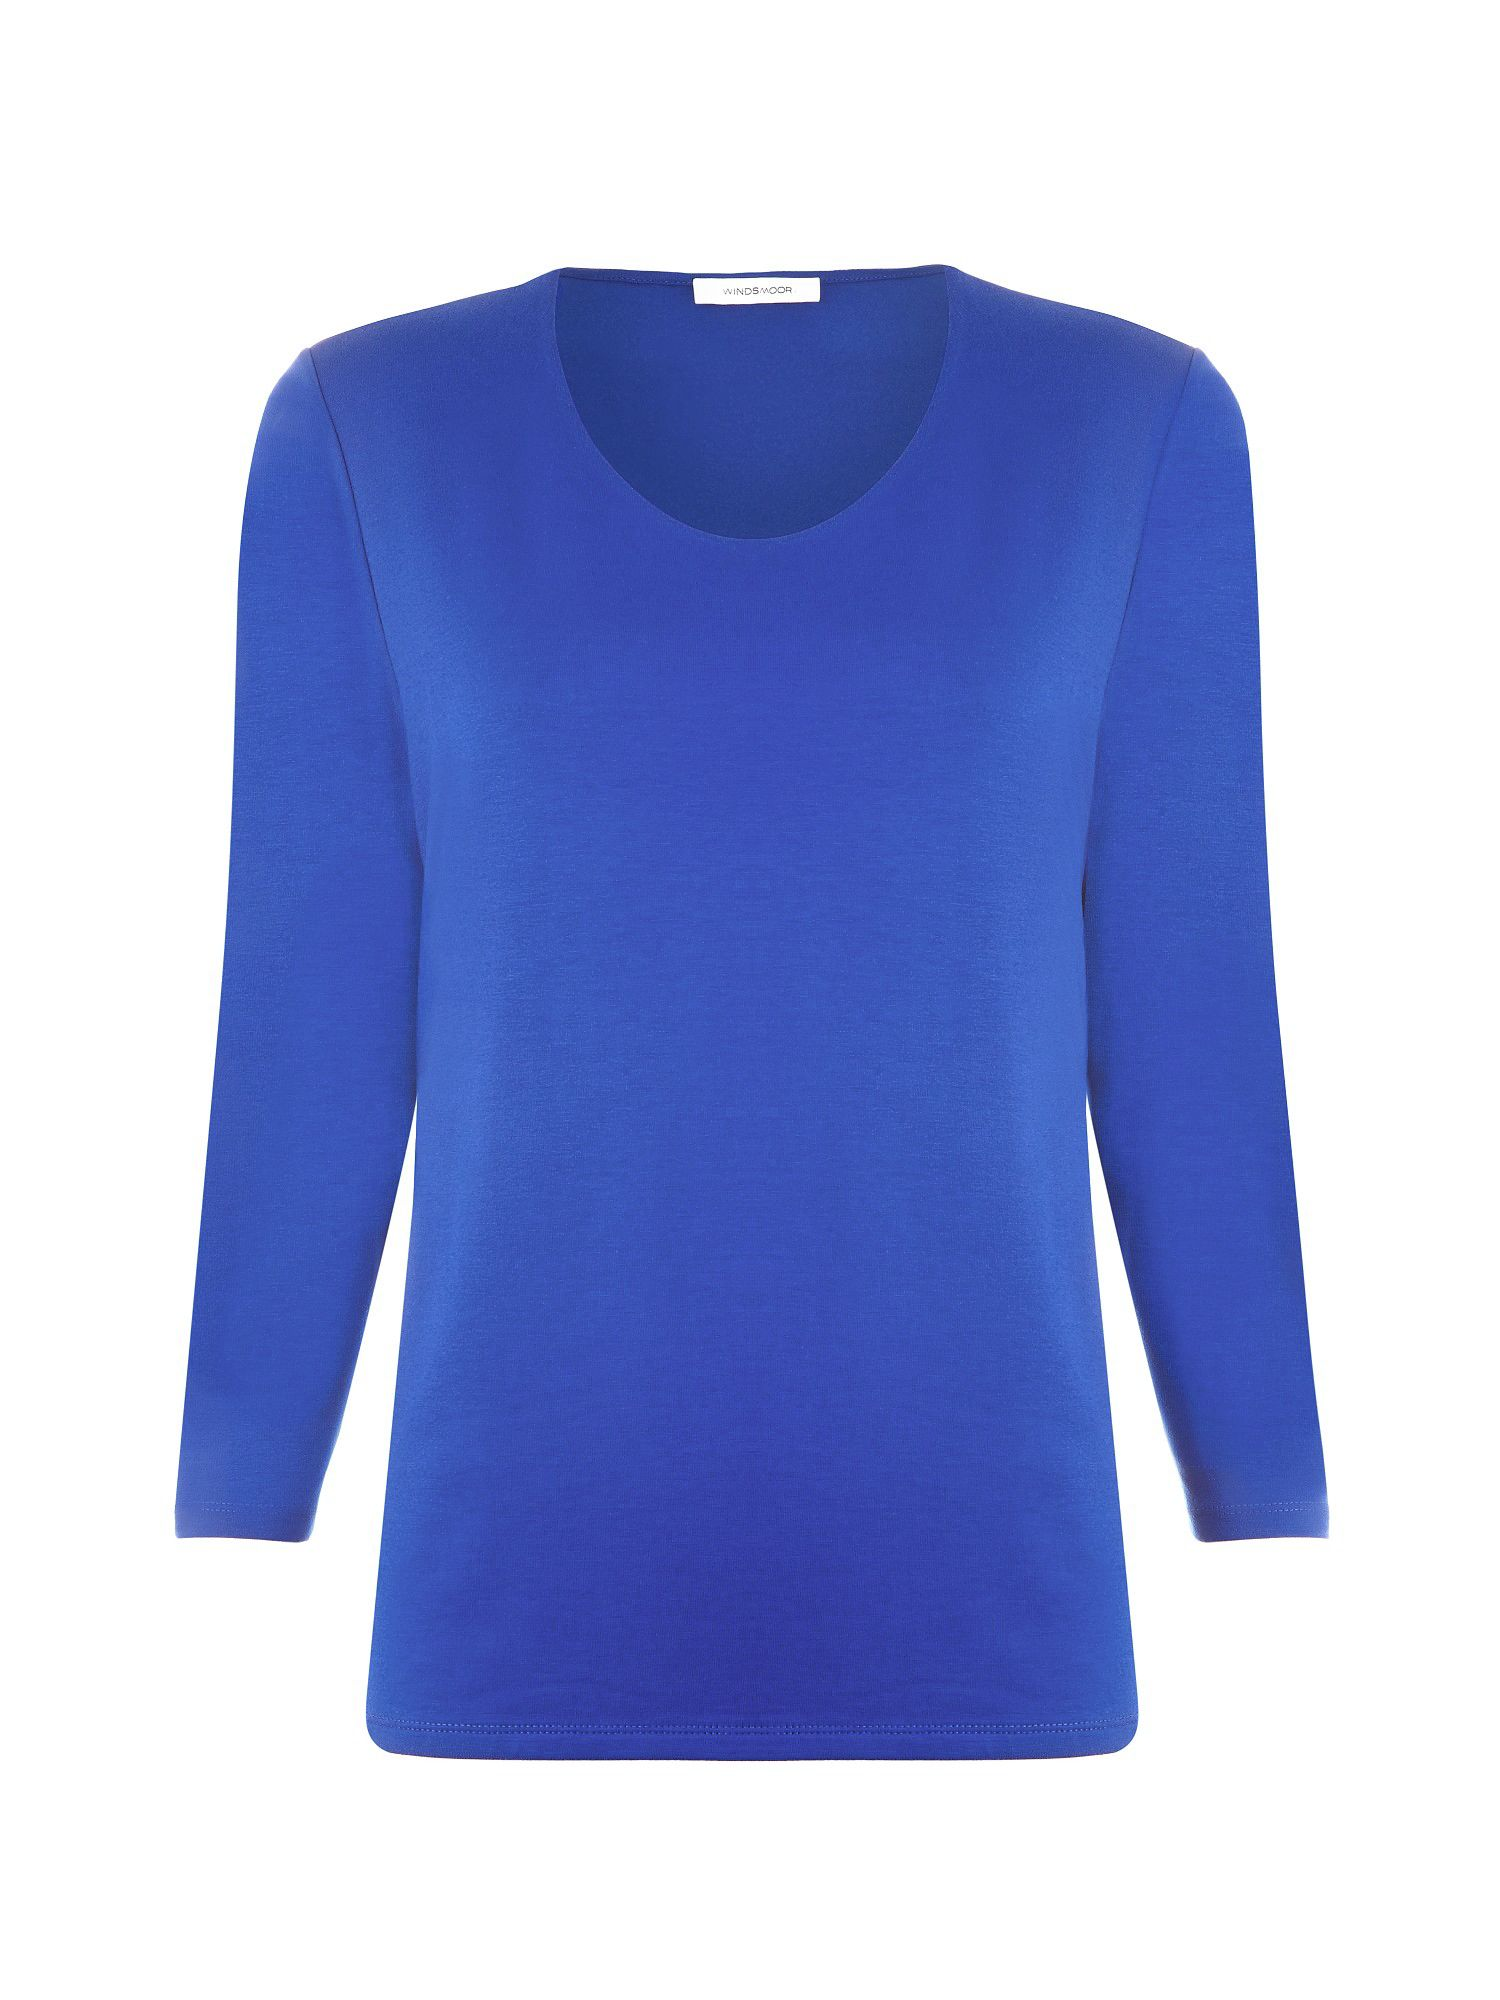 Cobalt scoop neck top